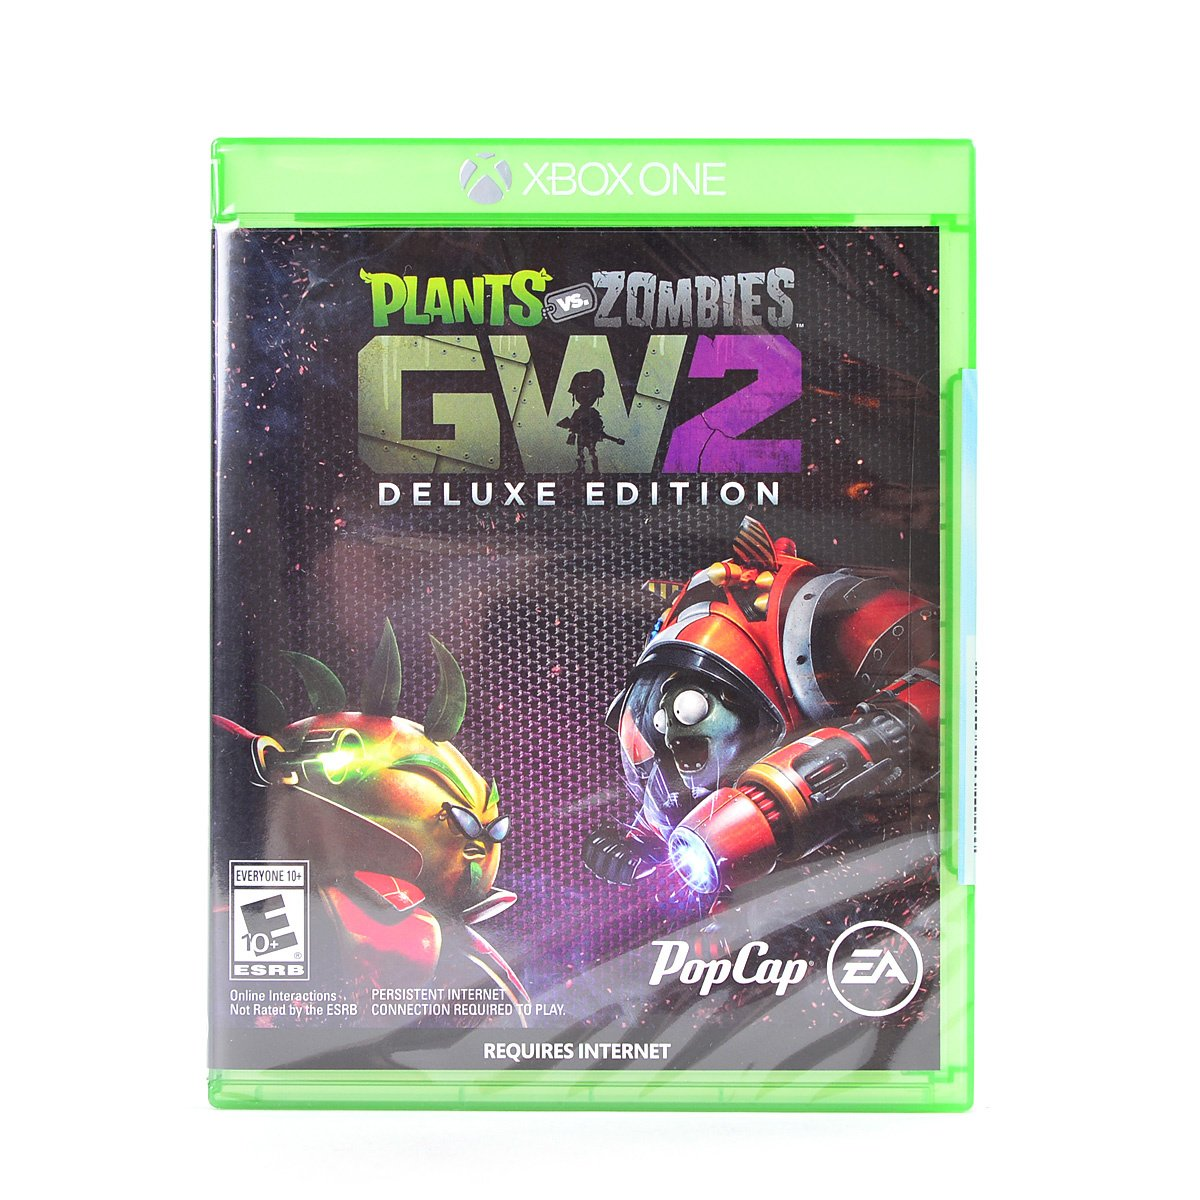 plants vs zombies garden warfare 2 deluxe edition xbox one 3 us6999 - Plants Vs Zombies Garden Warfare 2 Xbox 360